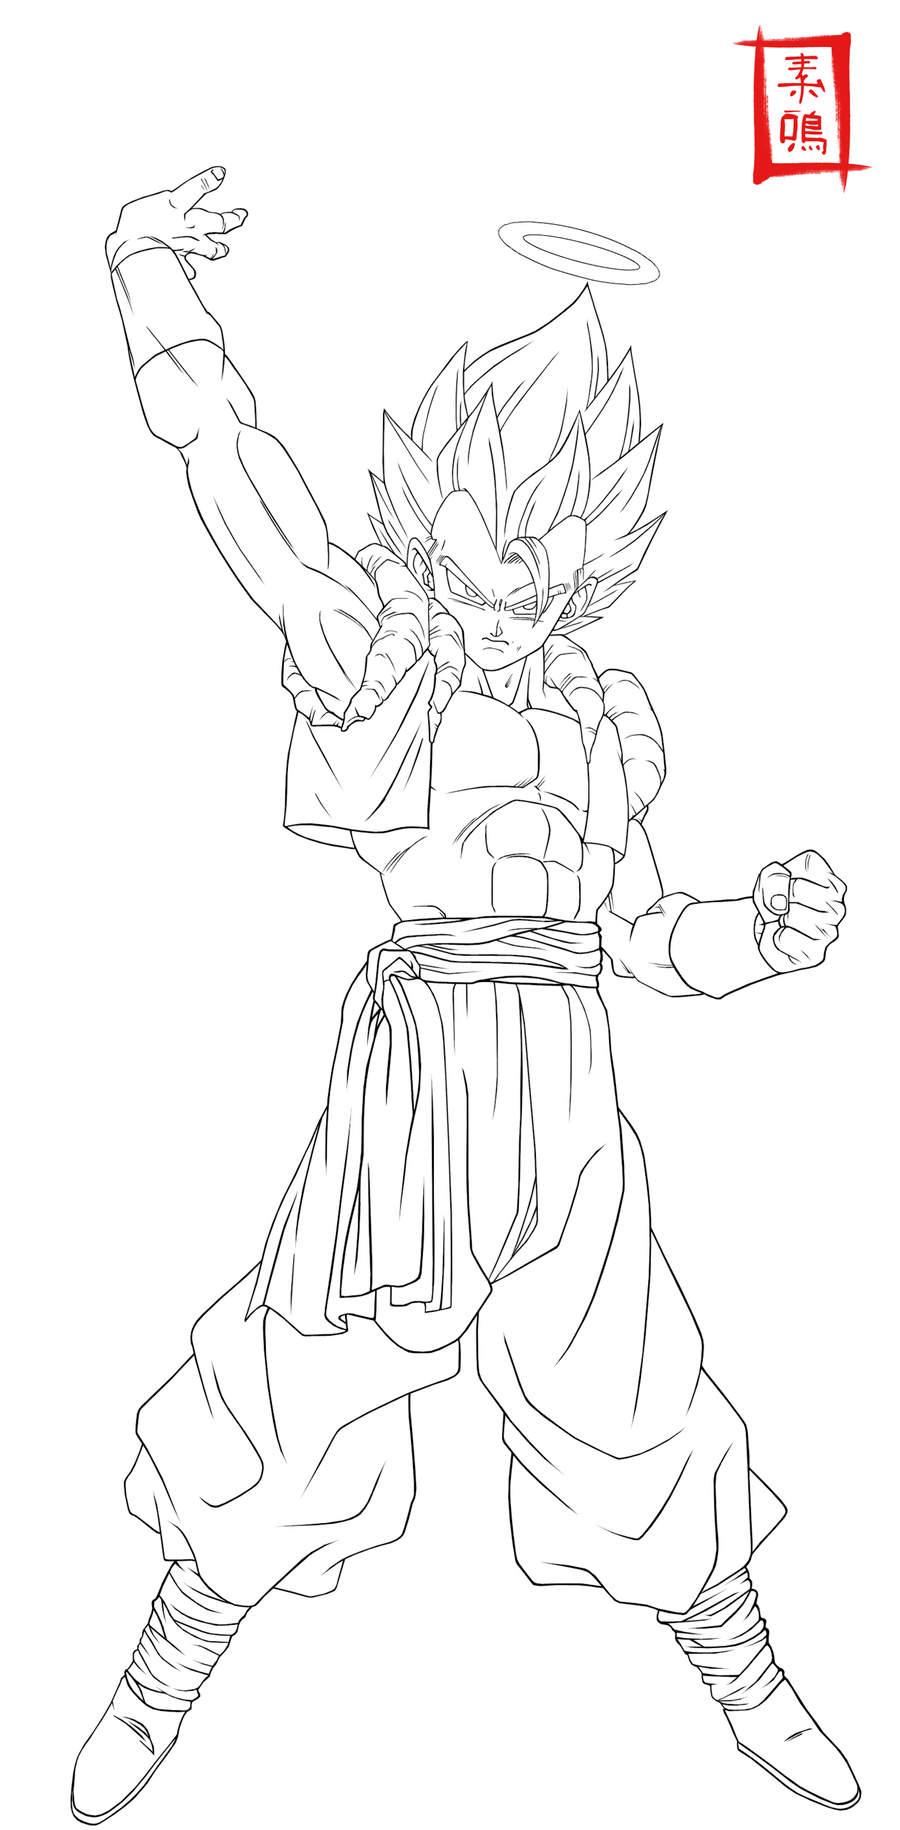 Ultimate Gogeta Lineart by SnaKou on DeviantArt